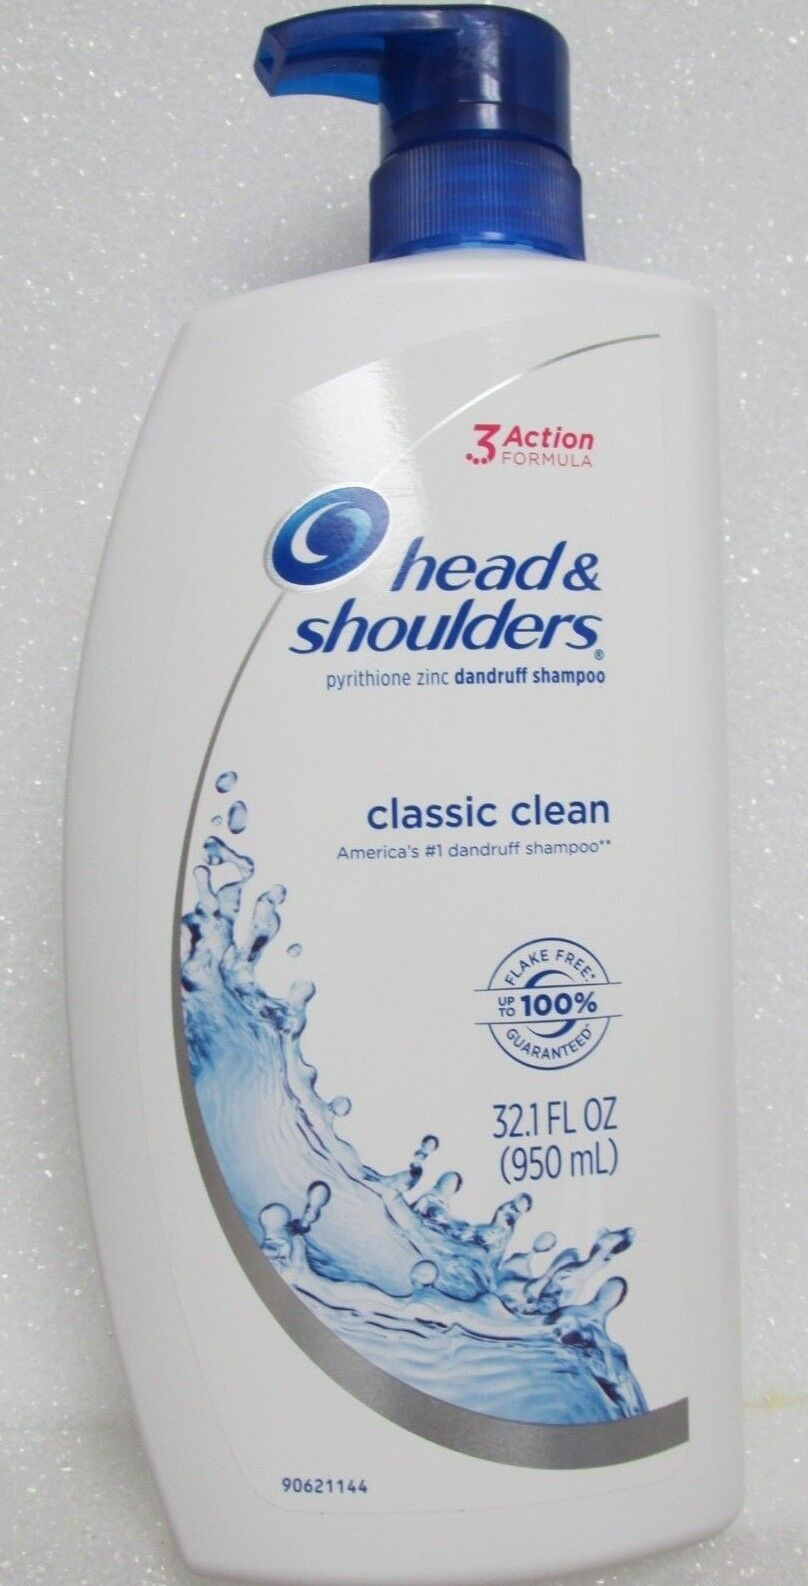 Head & Shoulders Classic Clean Dandruff Shampoo, 32.1 fl oz